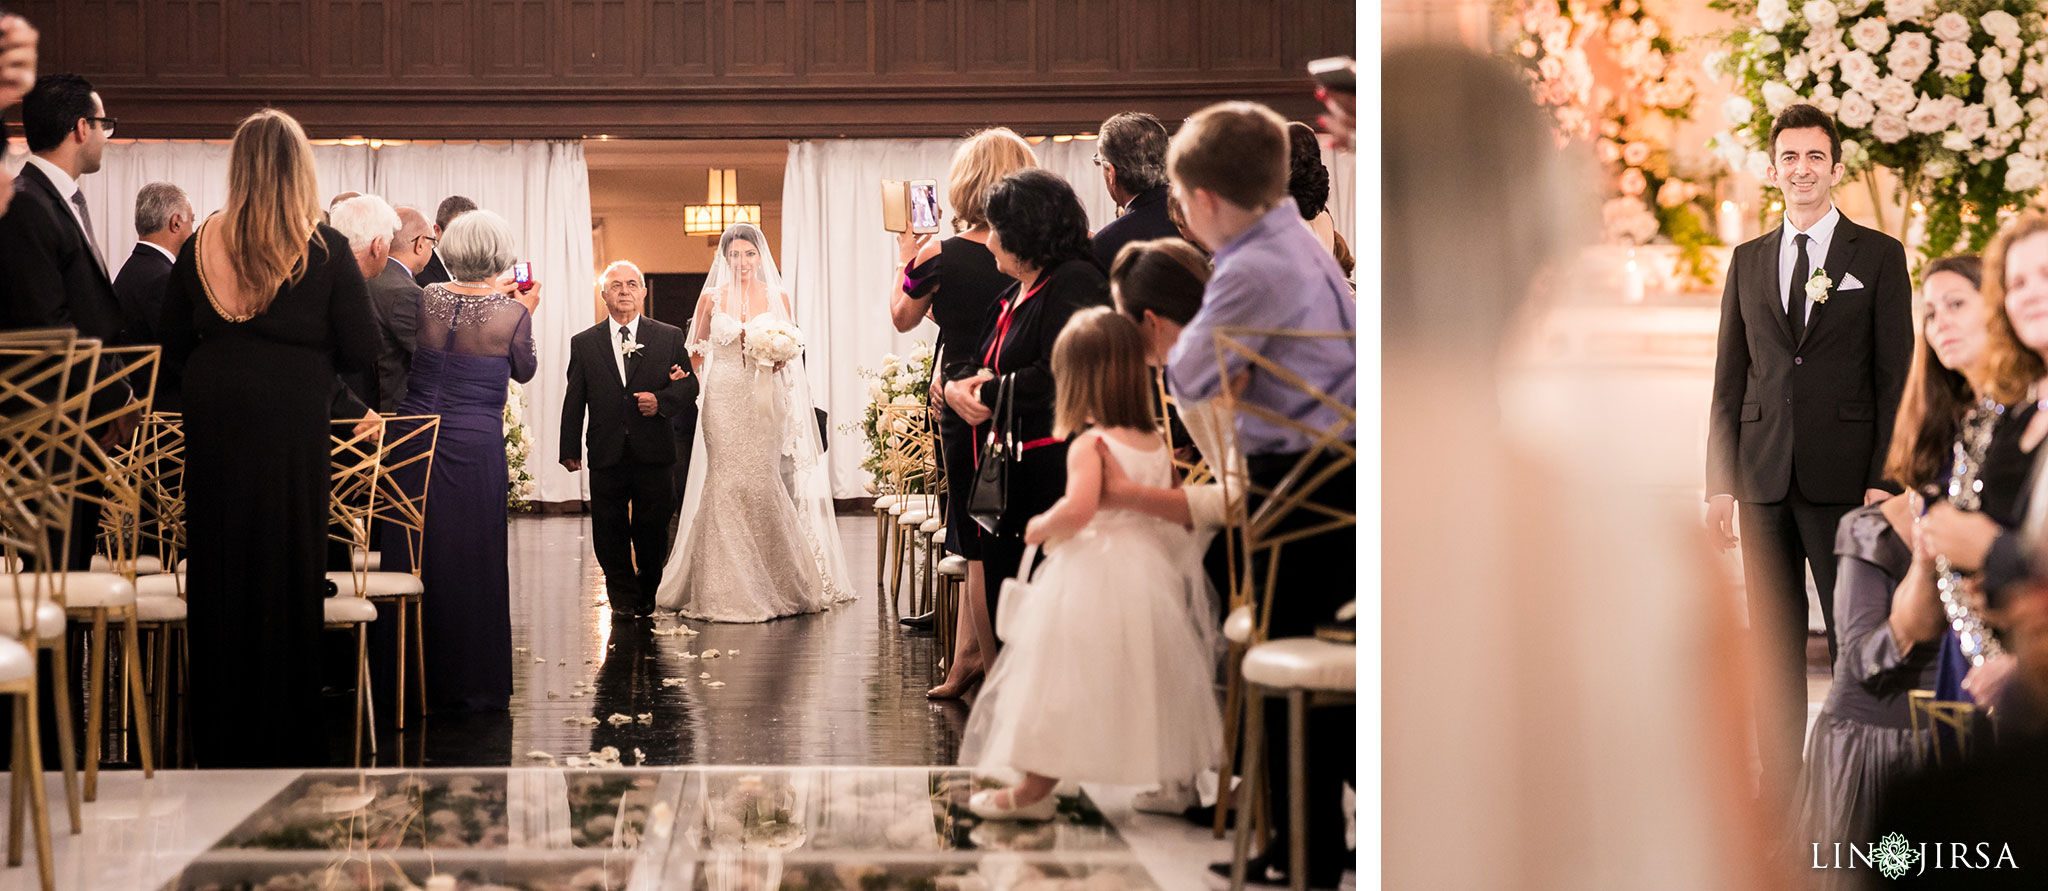 015 st vibiana cathedral los angeles wedding photography